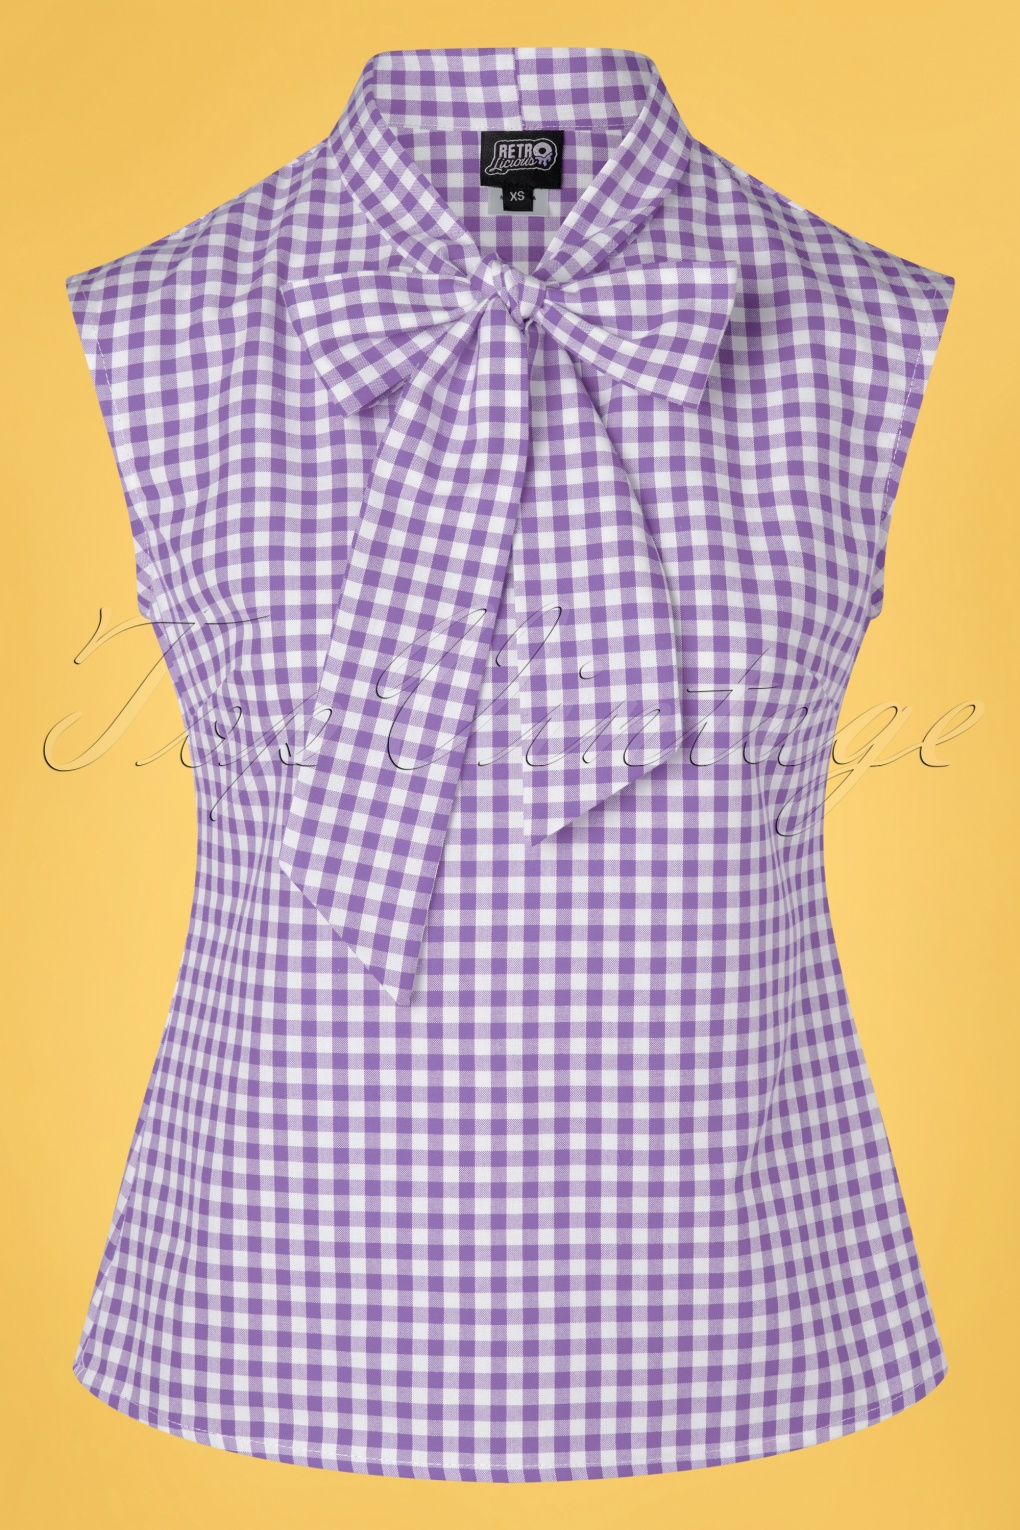 60s Shirts, T-shirts, Blouses, Hippie Shirts 60s Violet Gingham Bow Top in Lilac and White £24.95 AT vintagedancer.com